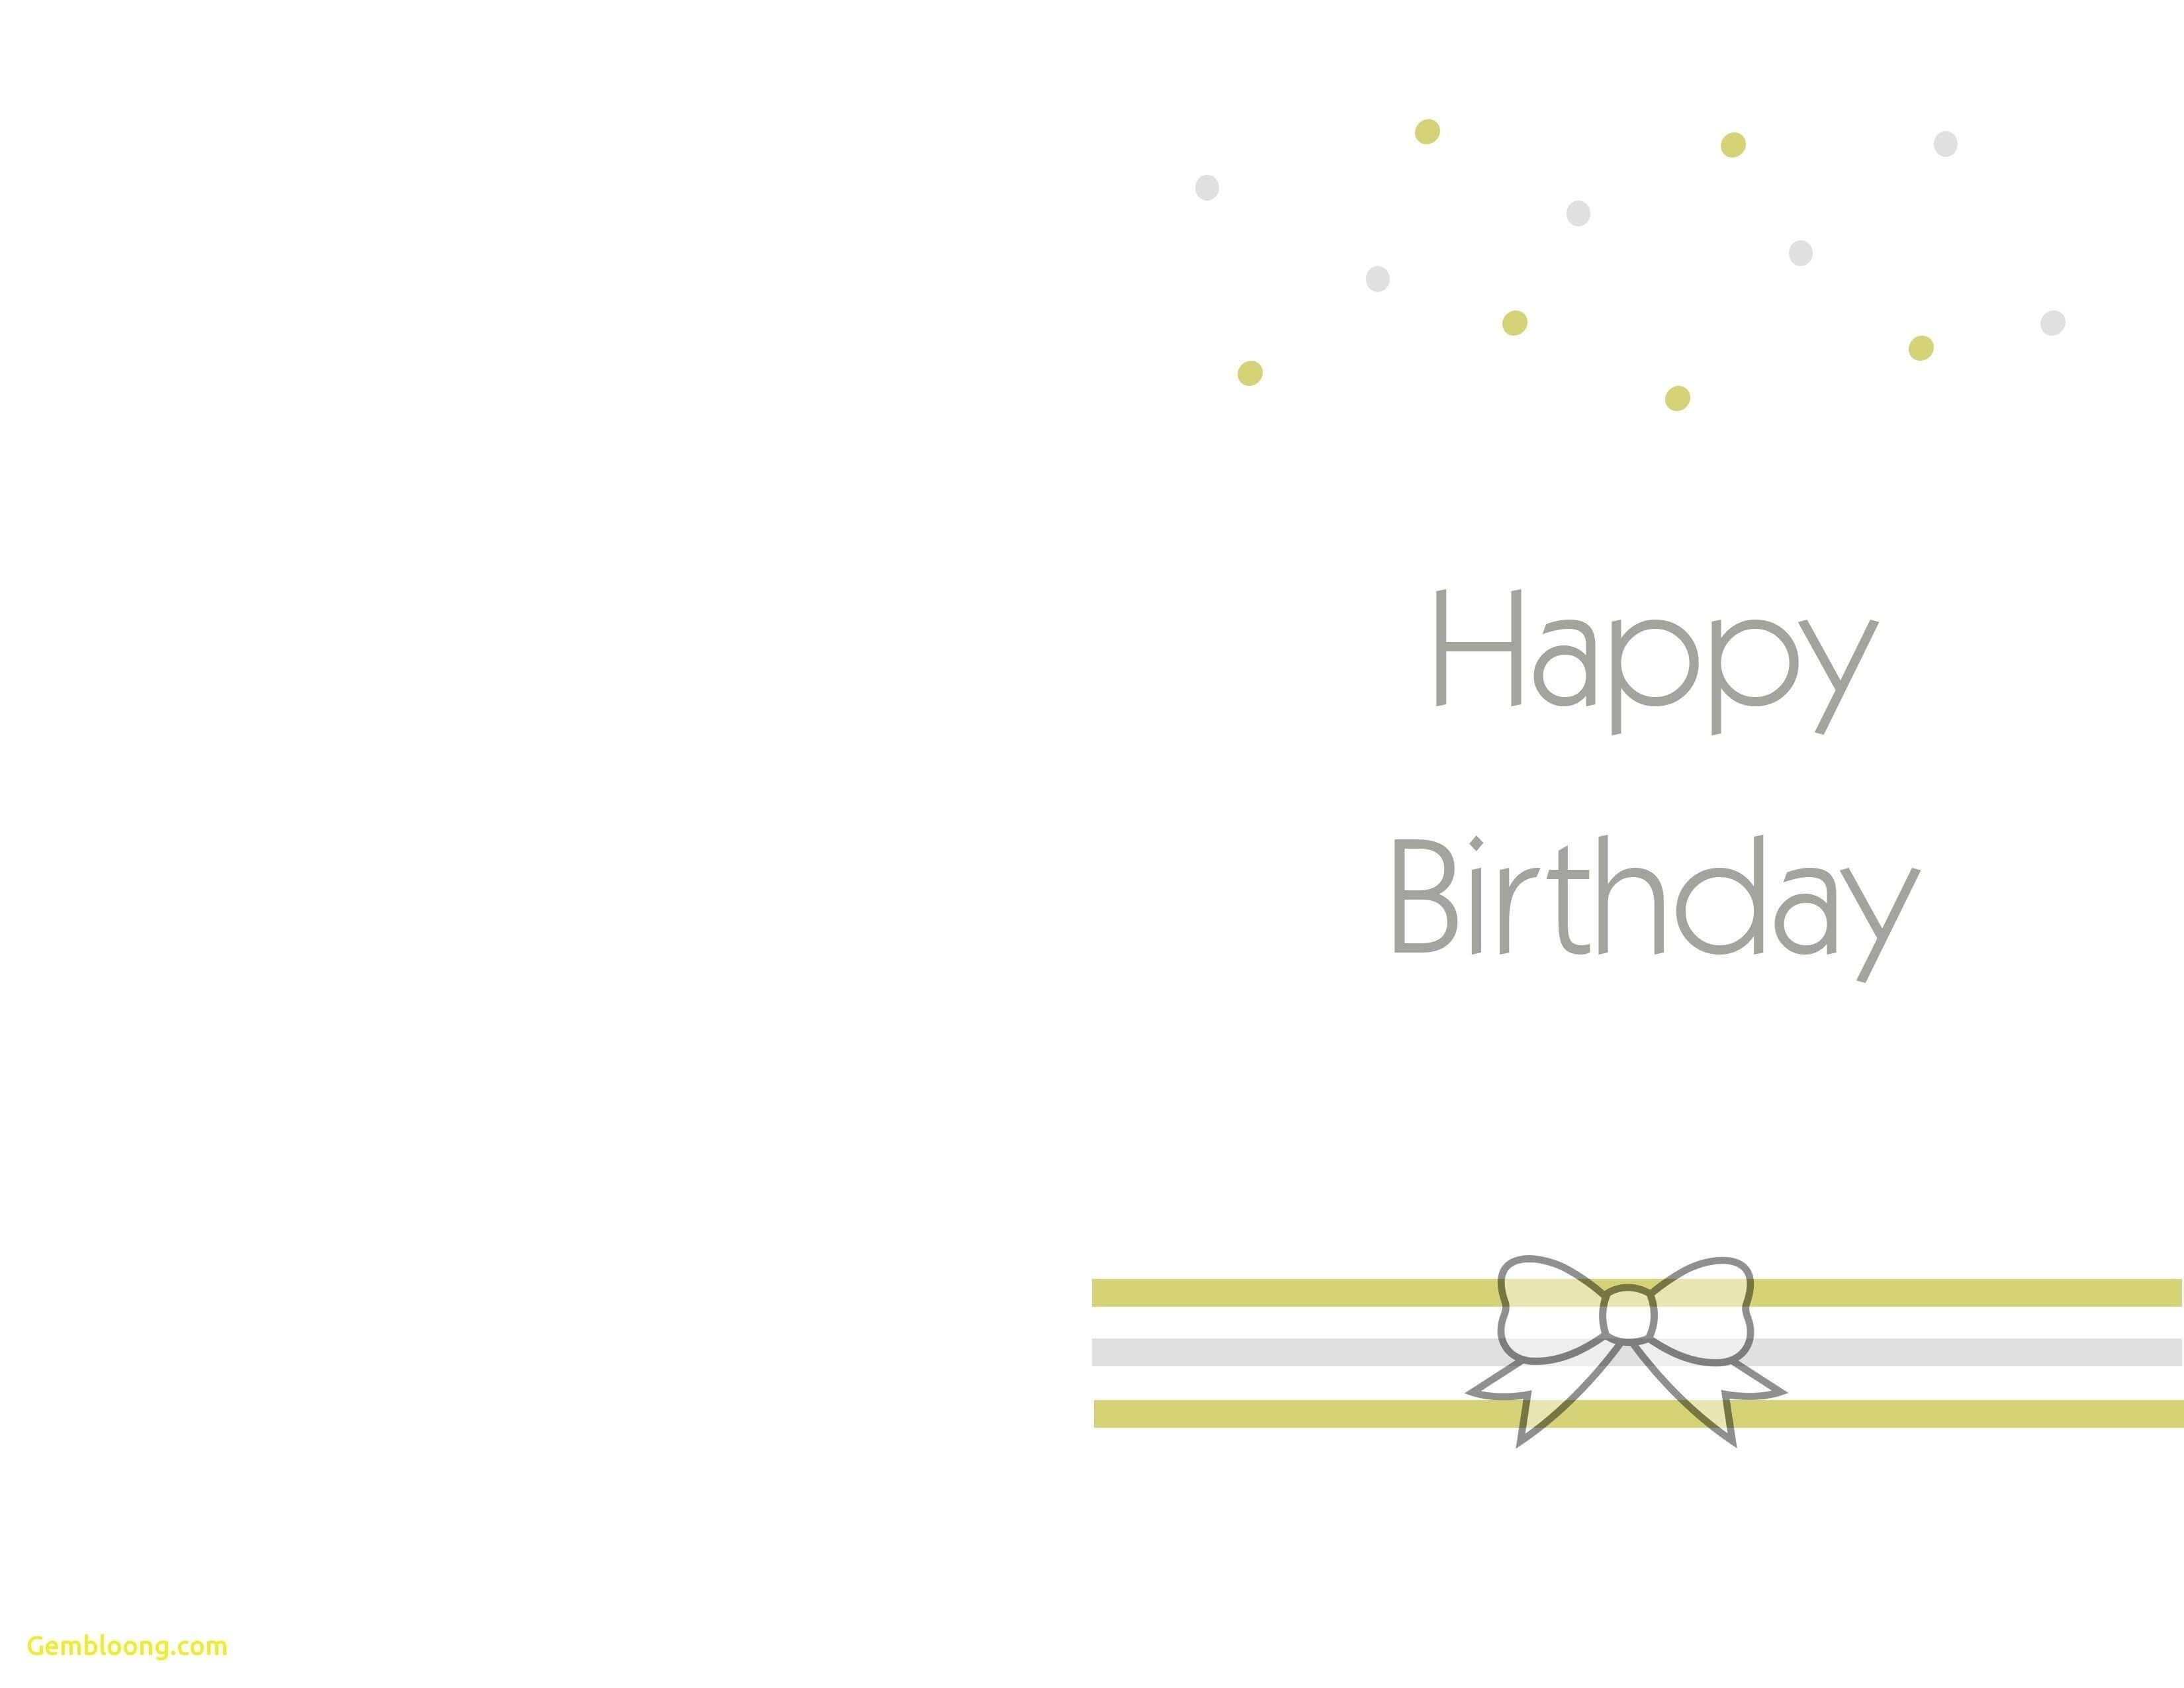 Printable Birthday Cards Foldable | Theveliger Inside Foldable Birthday Card Template